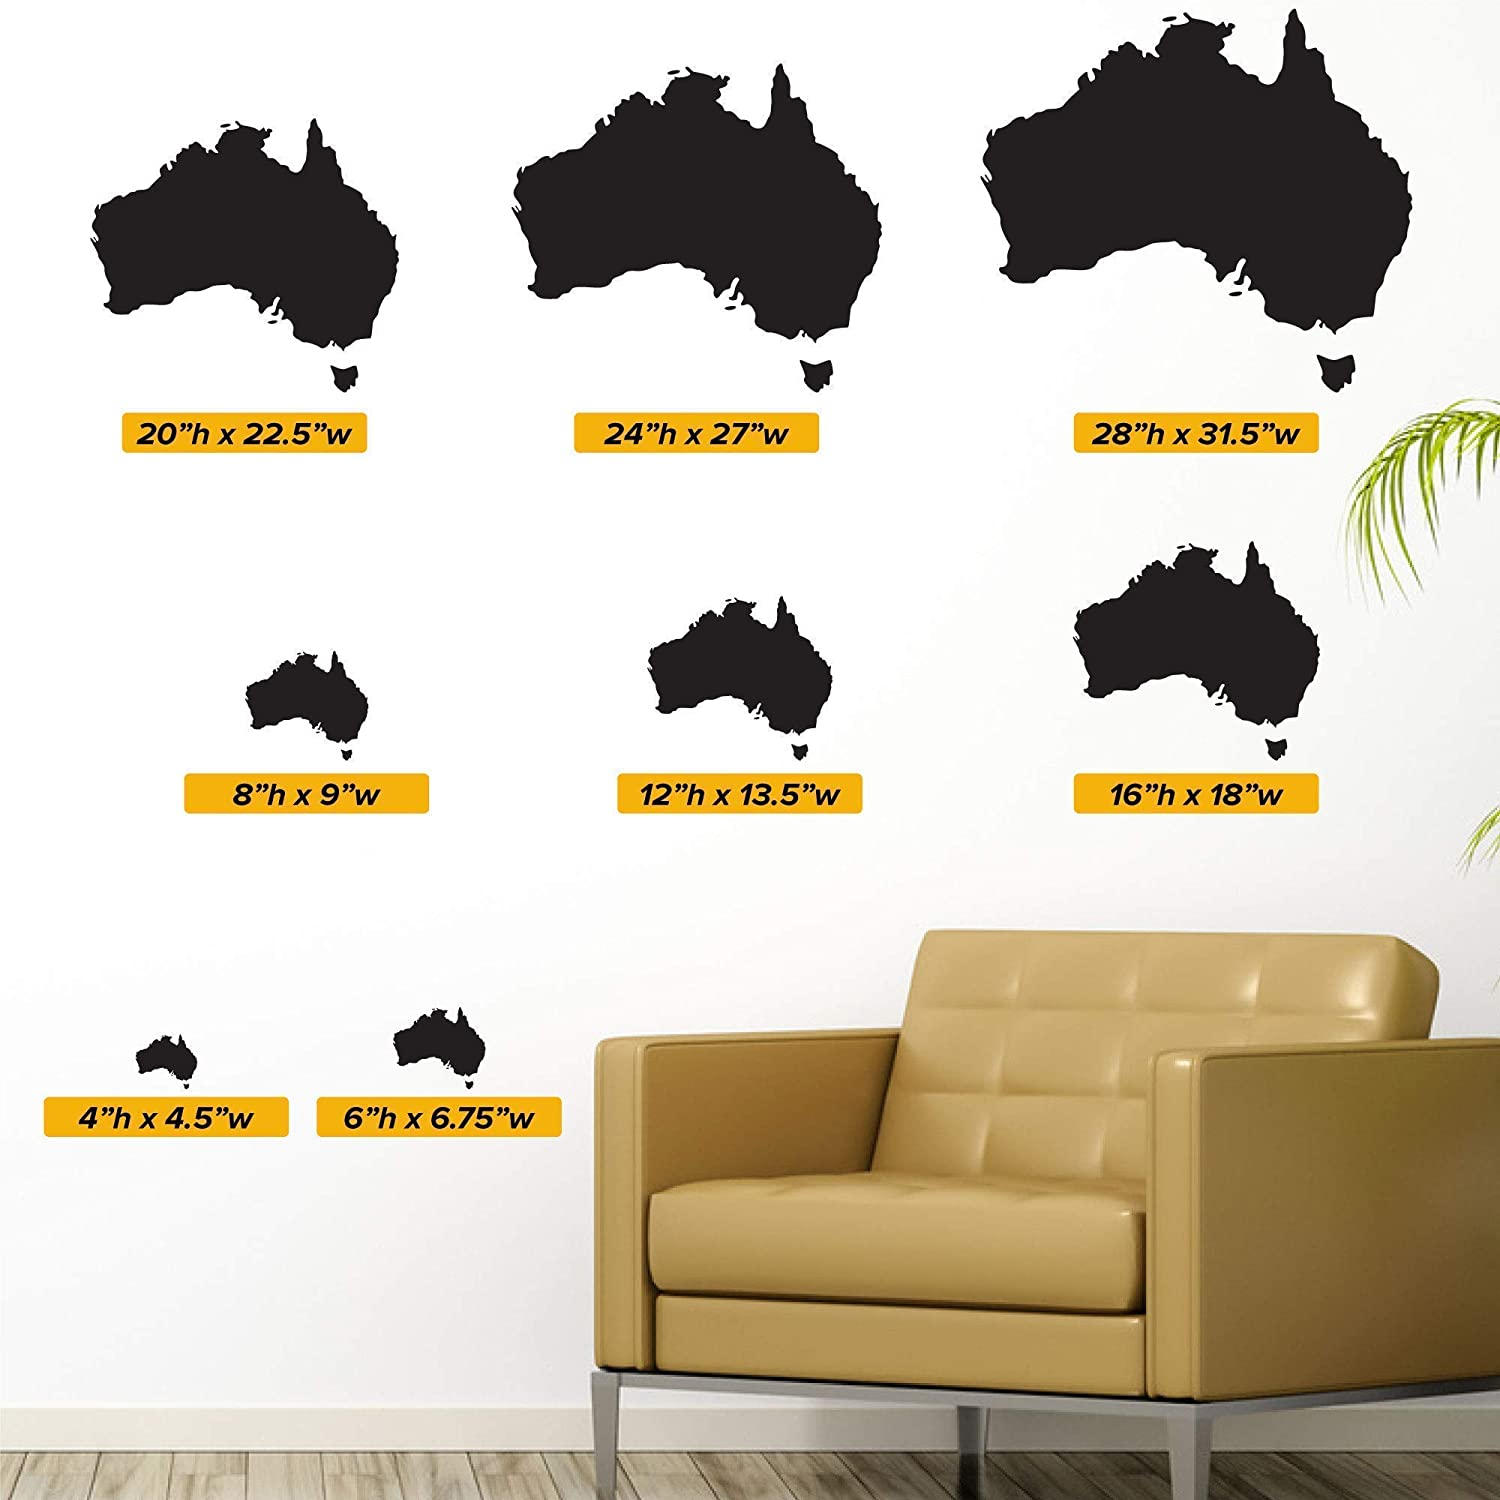 27 tall x 27 wide The Earth Featuring Australia Wall Decal